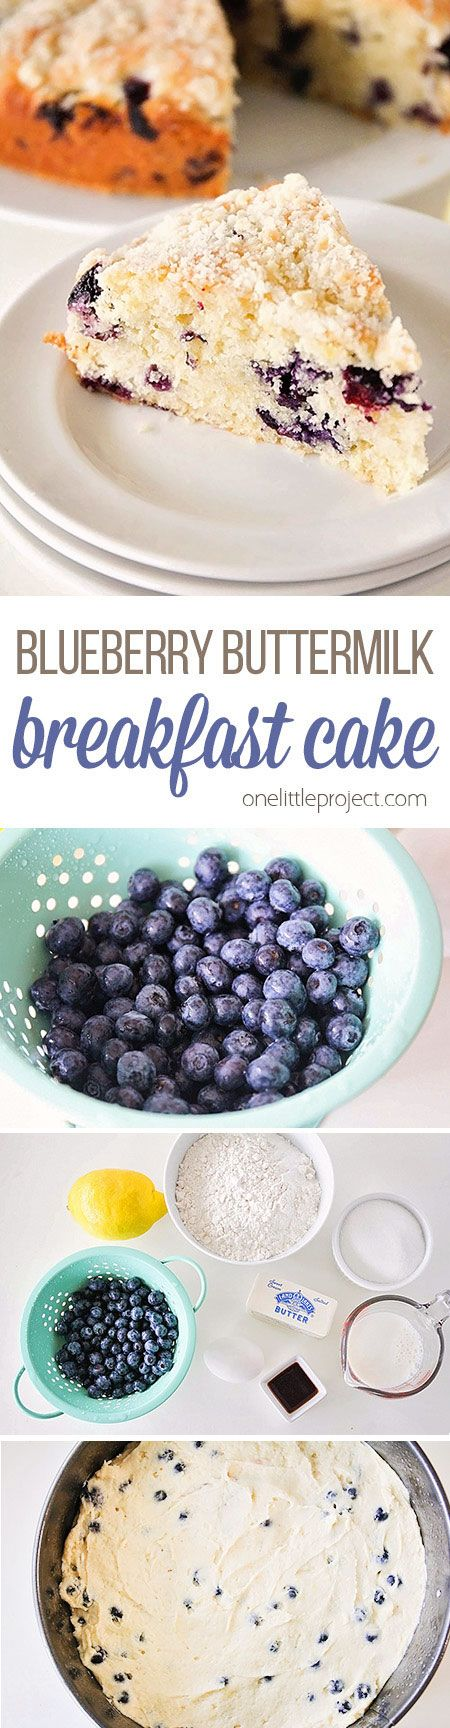 Blueberry Buttermilk Breakfast Cake | Blueberry Breakfast Cake Recipe